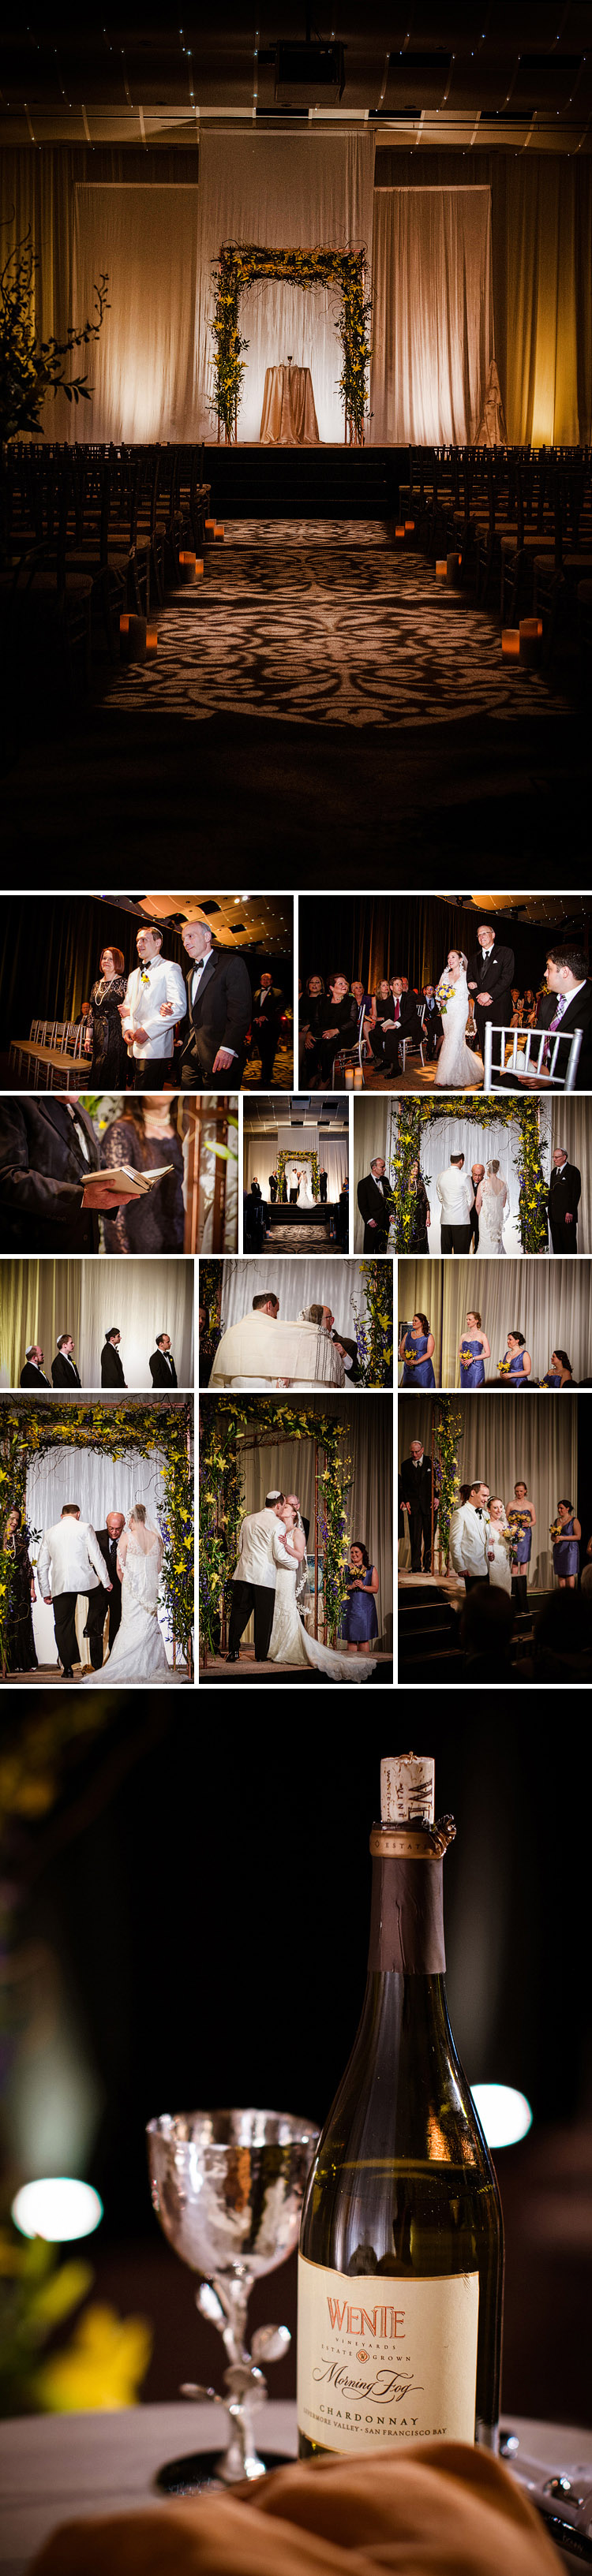 seawell-ballroom-denver-wedding-005